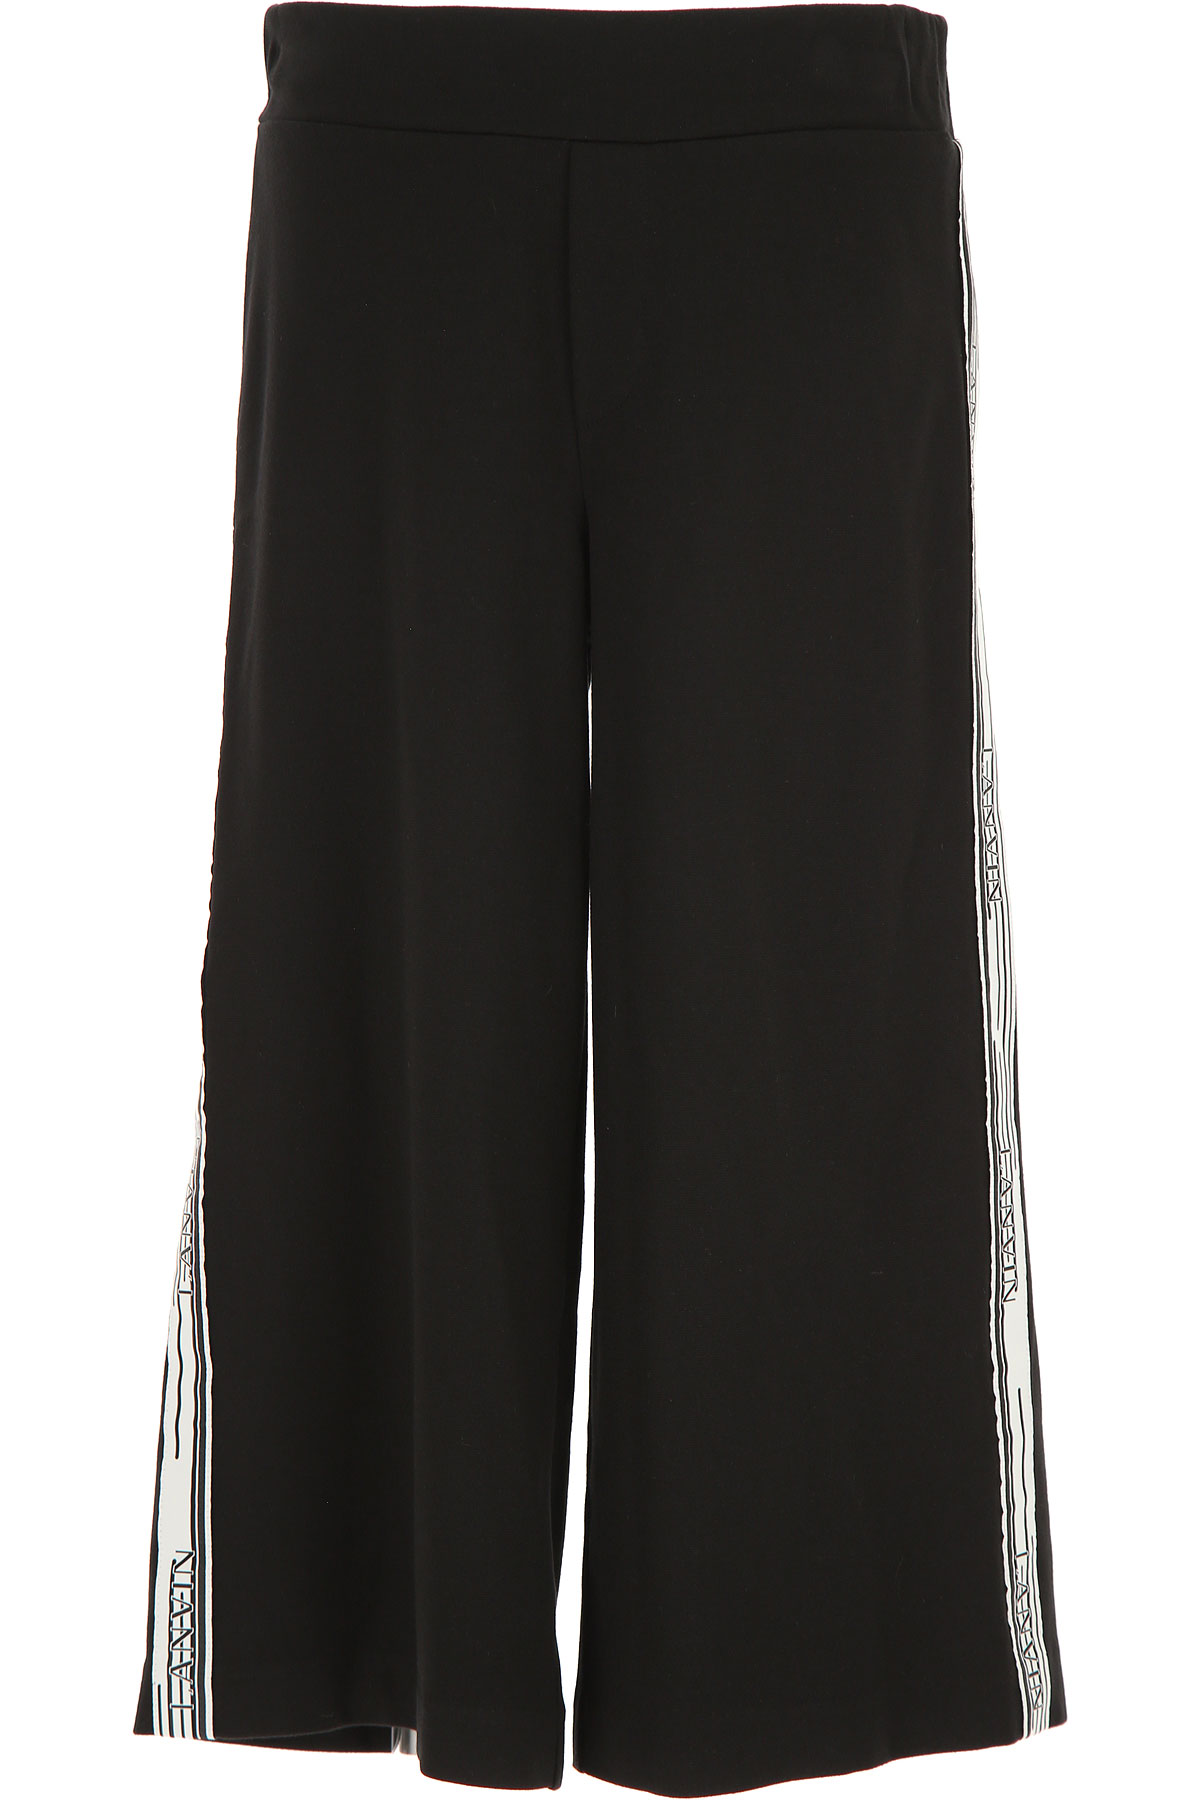 Lanvin Kids Pants for Girls On Sale, Black, viscosa, 2019, 10Y 12Y 14Y 8Y